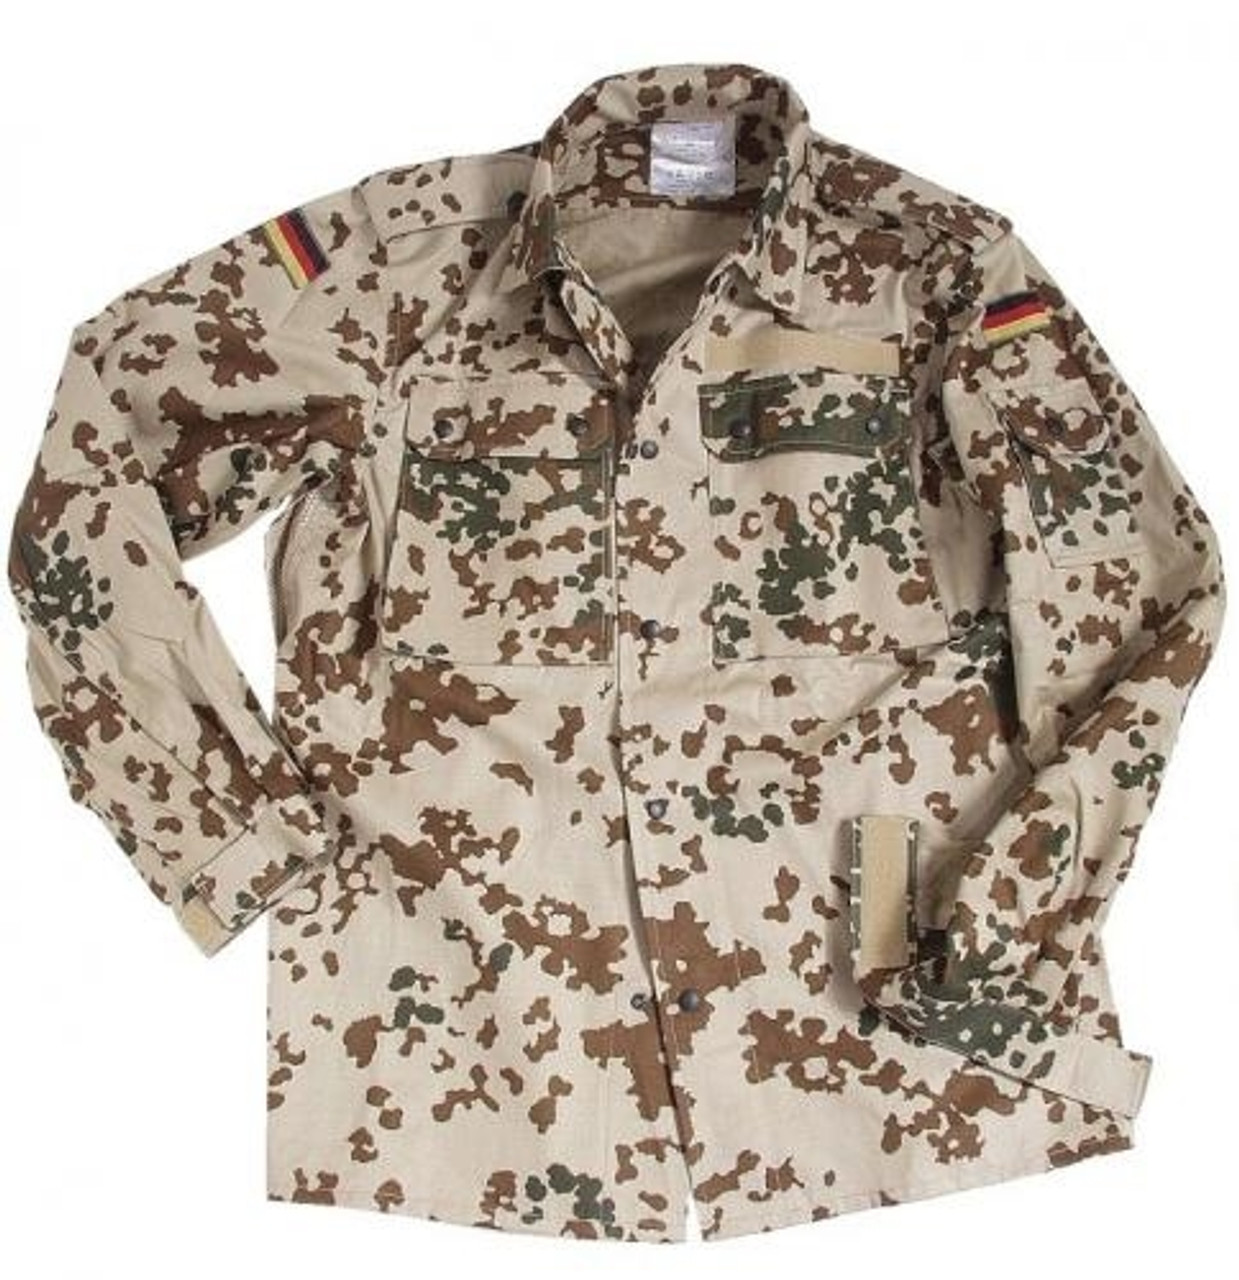 Bundeswehr Tropical Field Shirt from Hessen Surplus